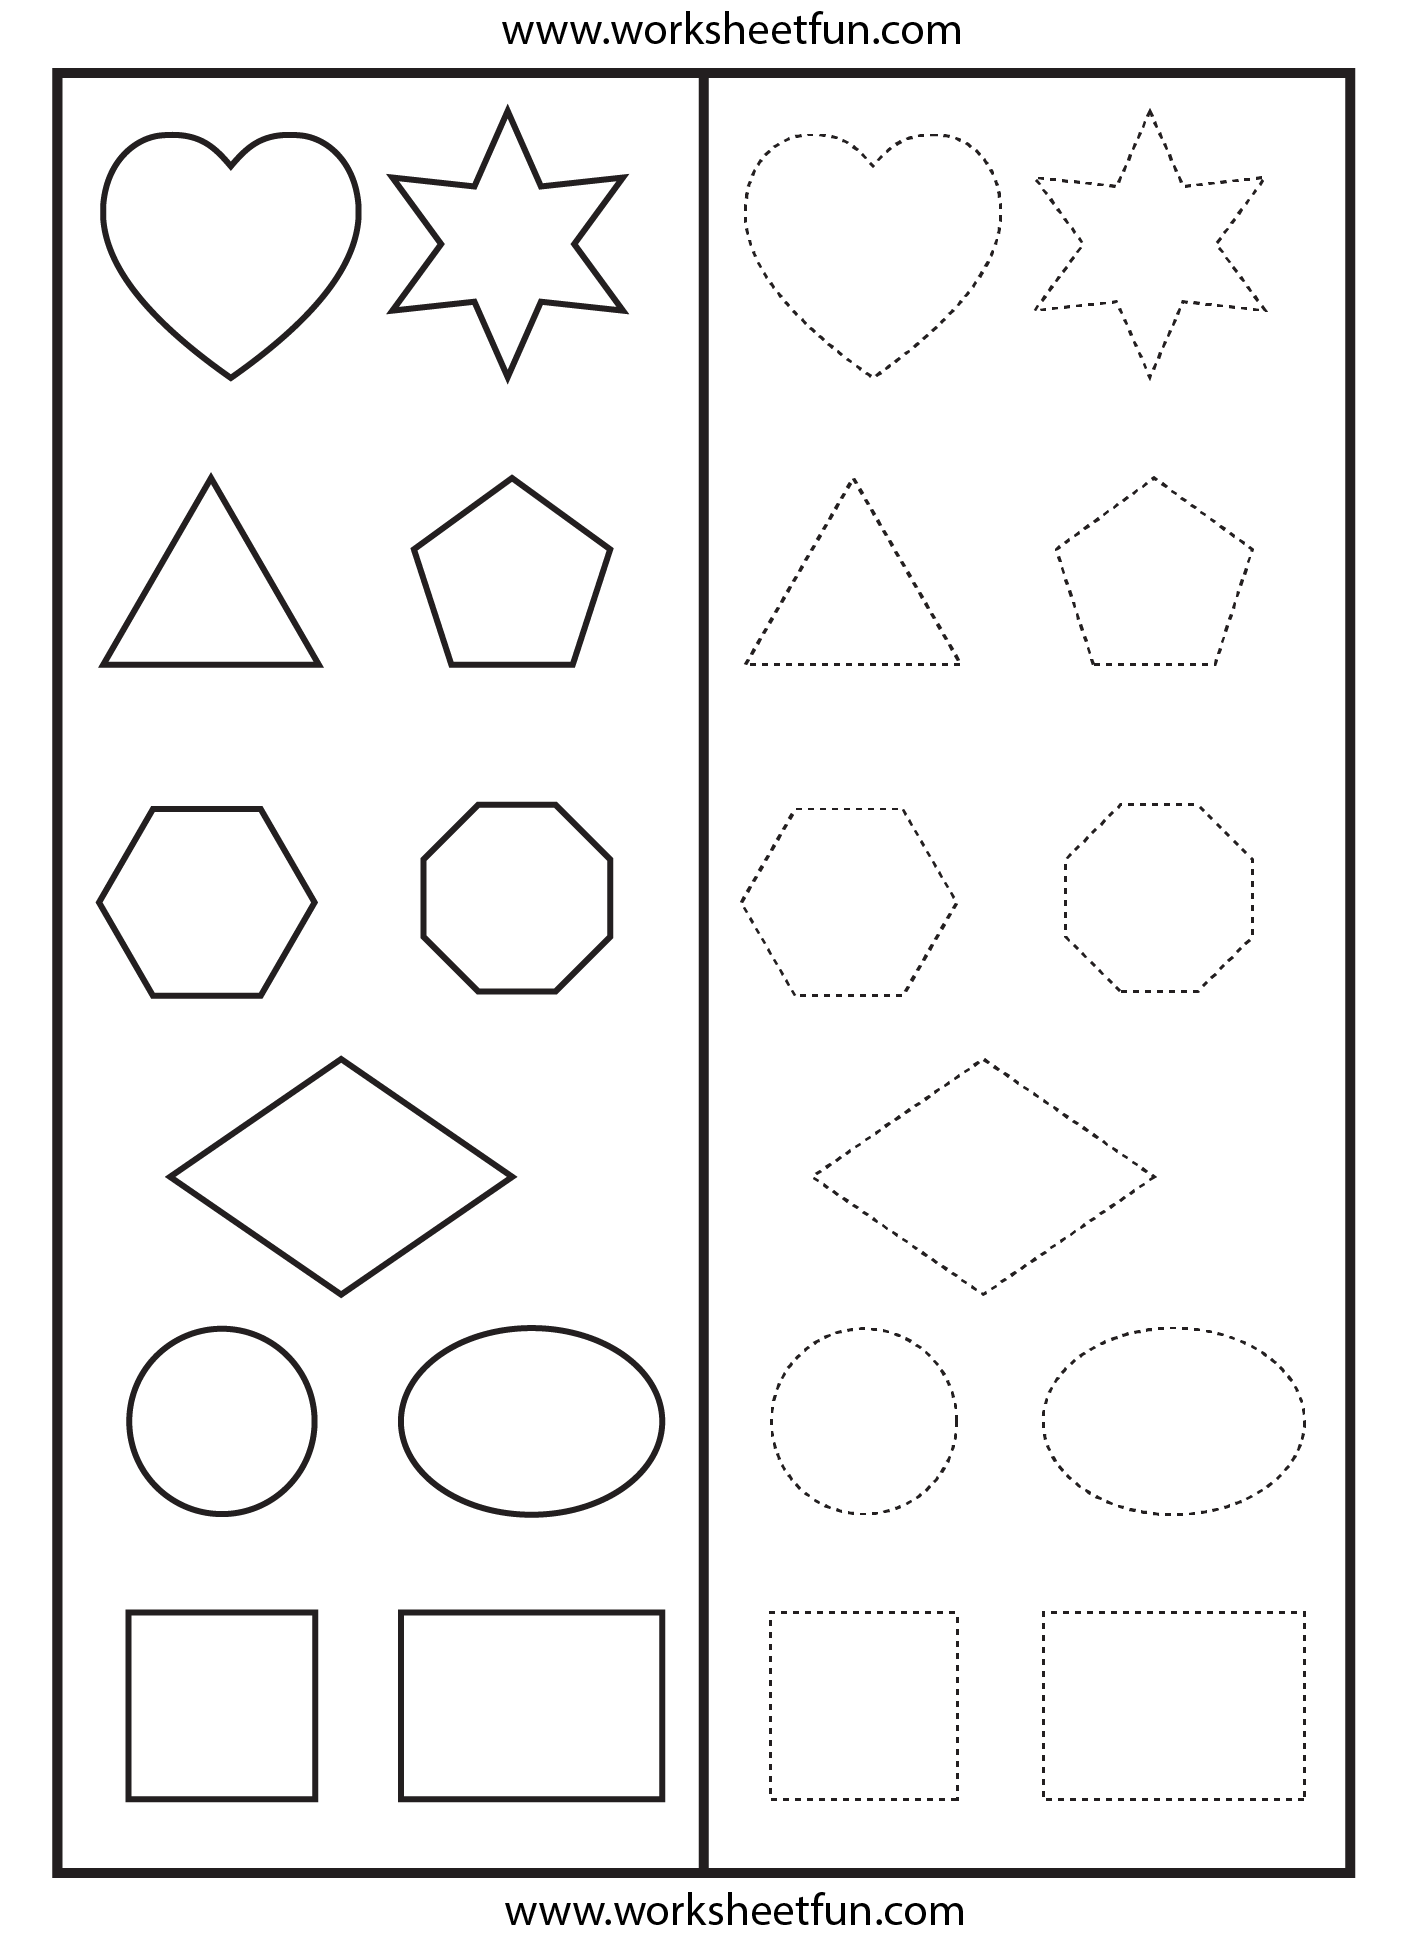 Heart Shape Tracing Worksheet